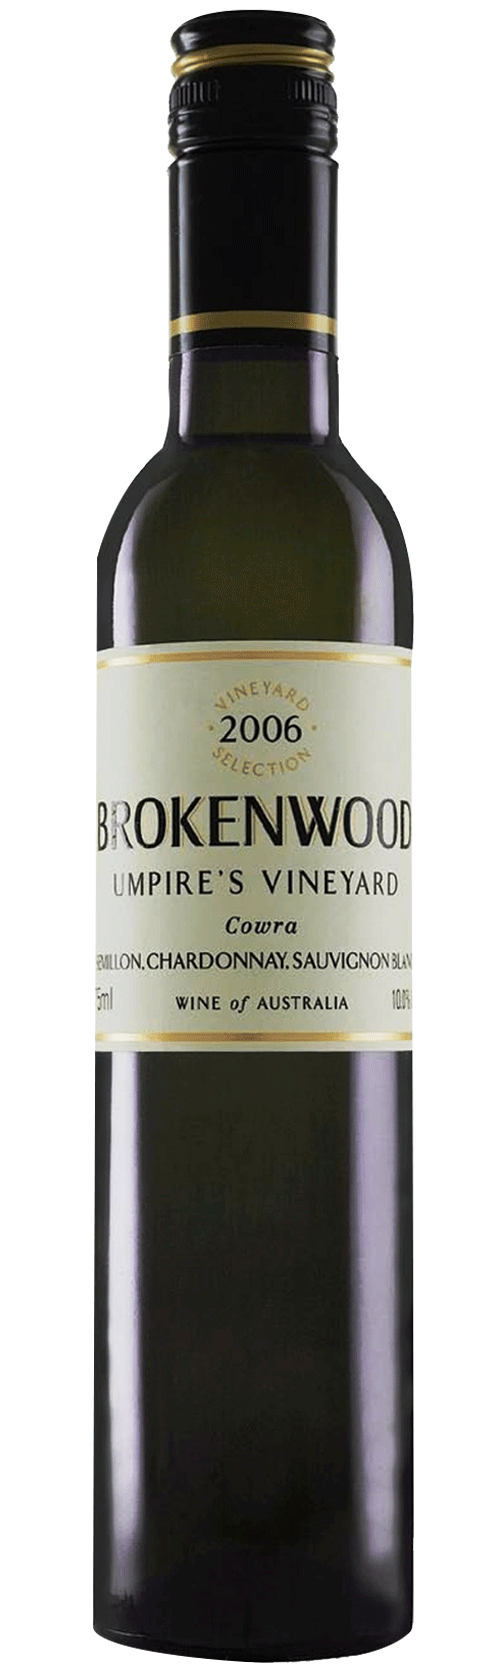 Brokenwood Umpire´s Vineyard Chardonnay Sauvignon Blanc 2008